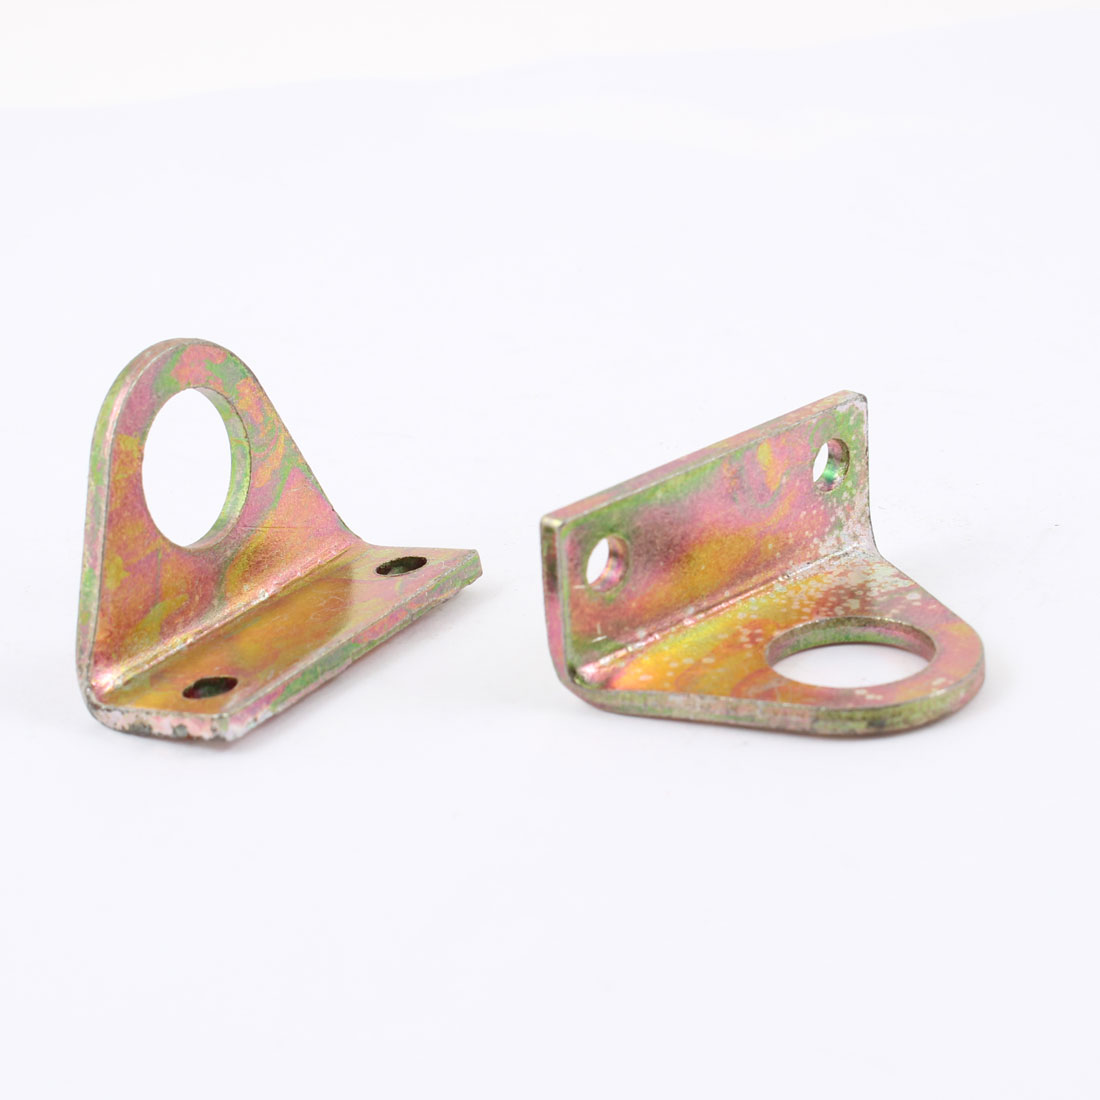 "0.6"" Dia Hole 1.8"" x 0.6"" x 1.2"" Right Angle Brass Tone Corner Bracket 2 Pcs"